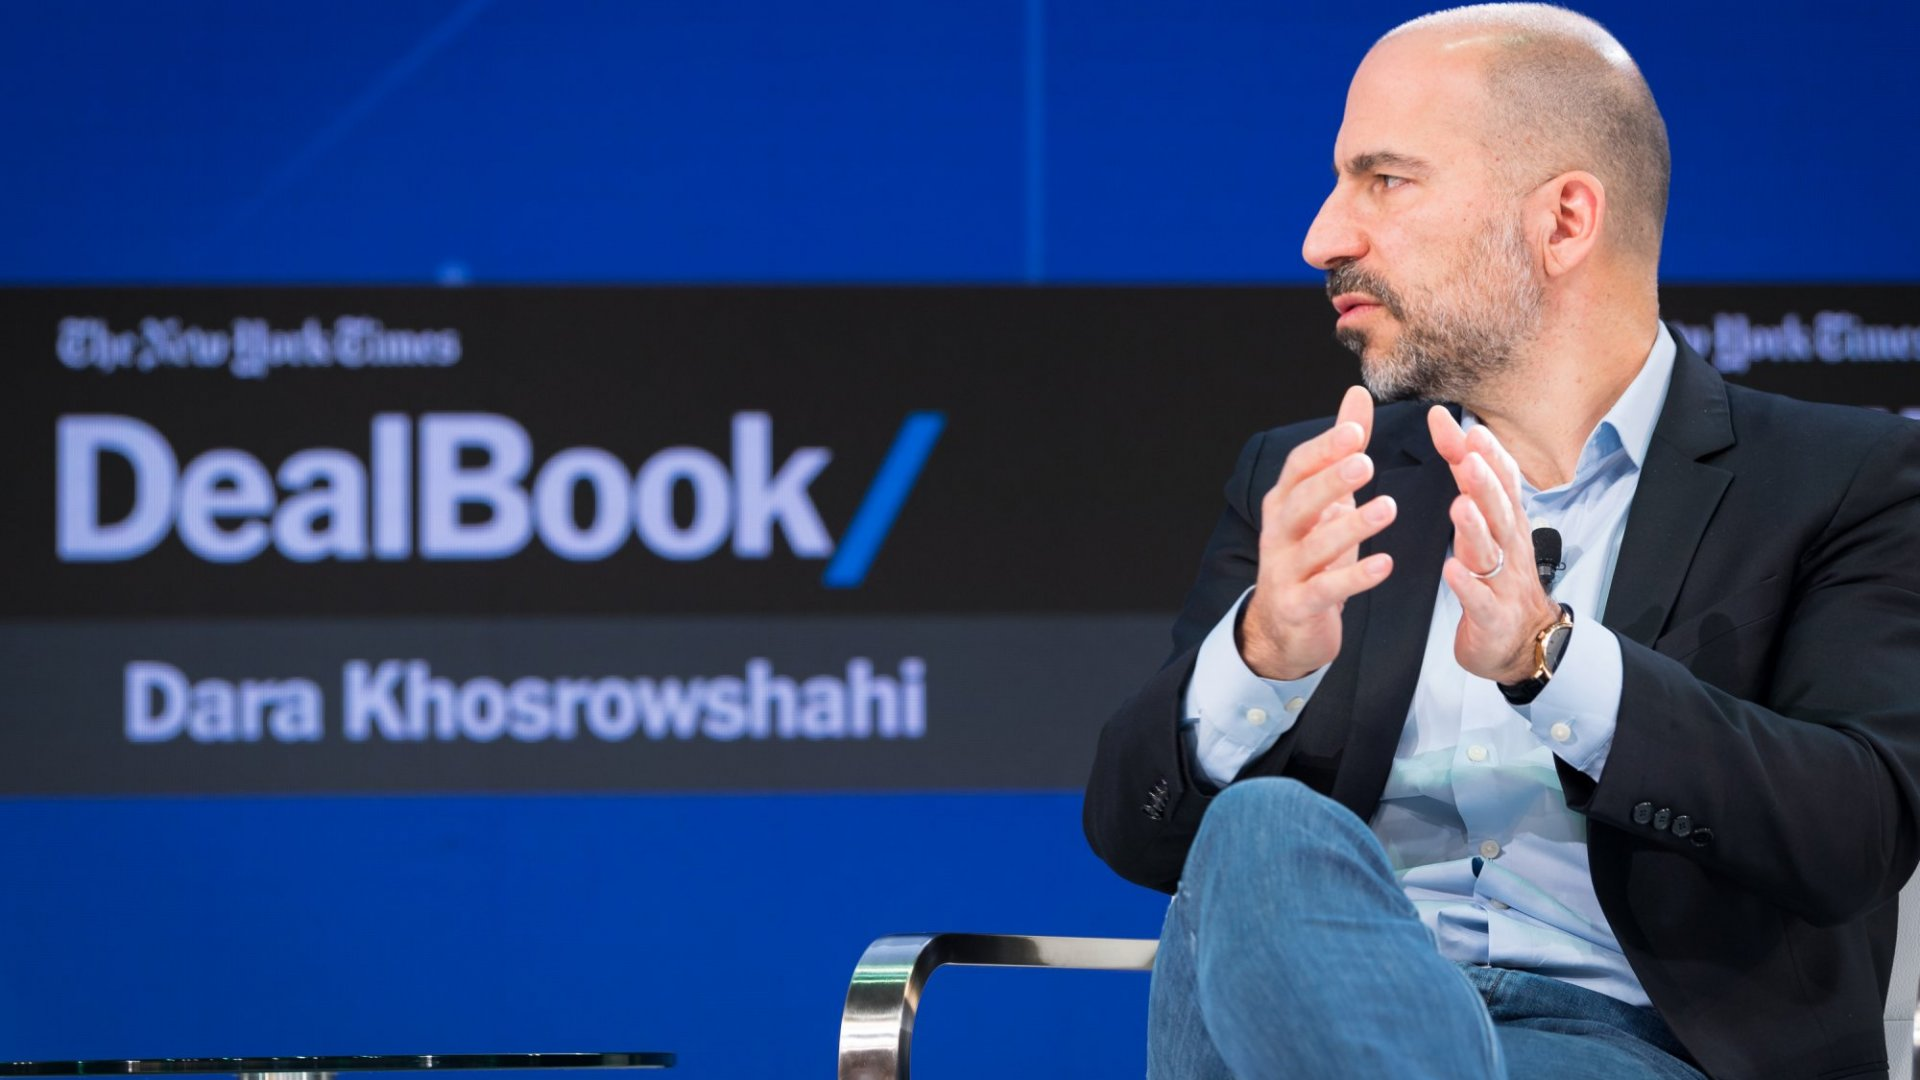 Uber: What Happened to Your Core Values?